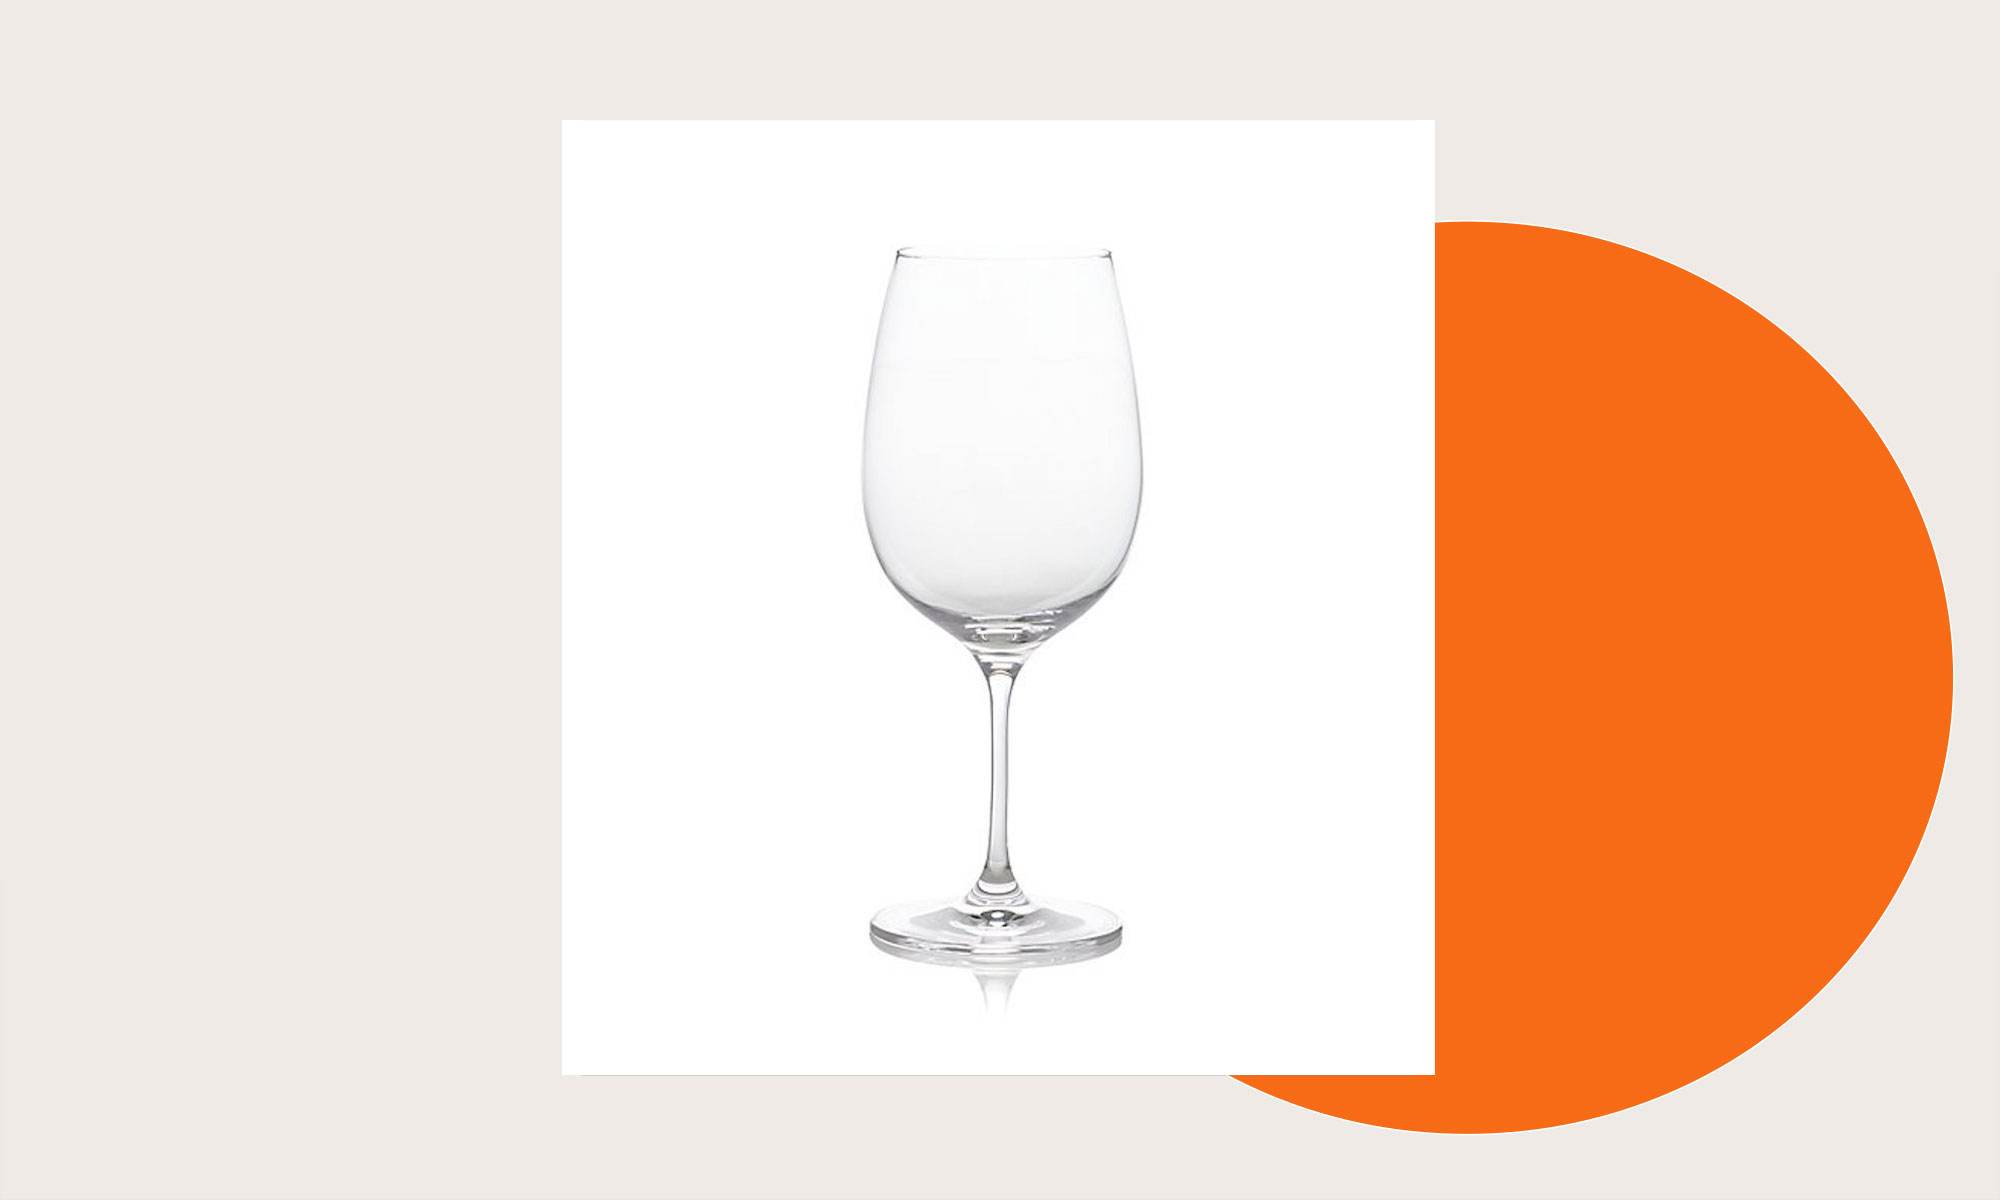 A wine glass on a cream and orange background